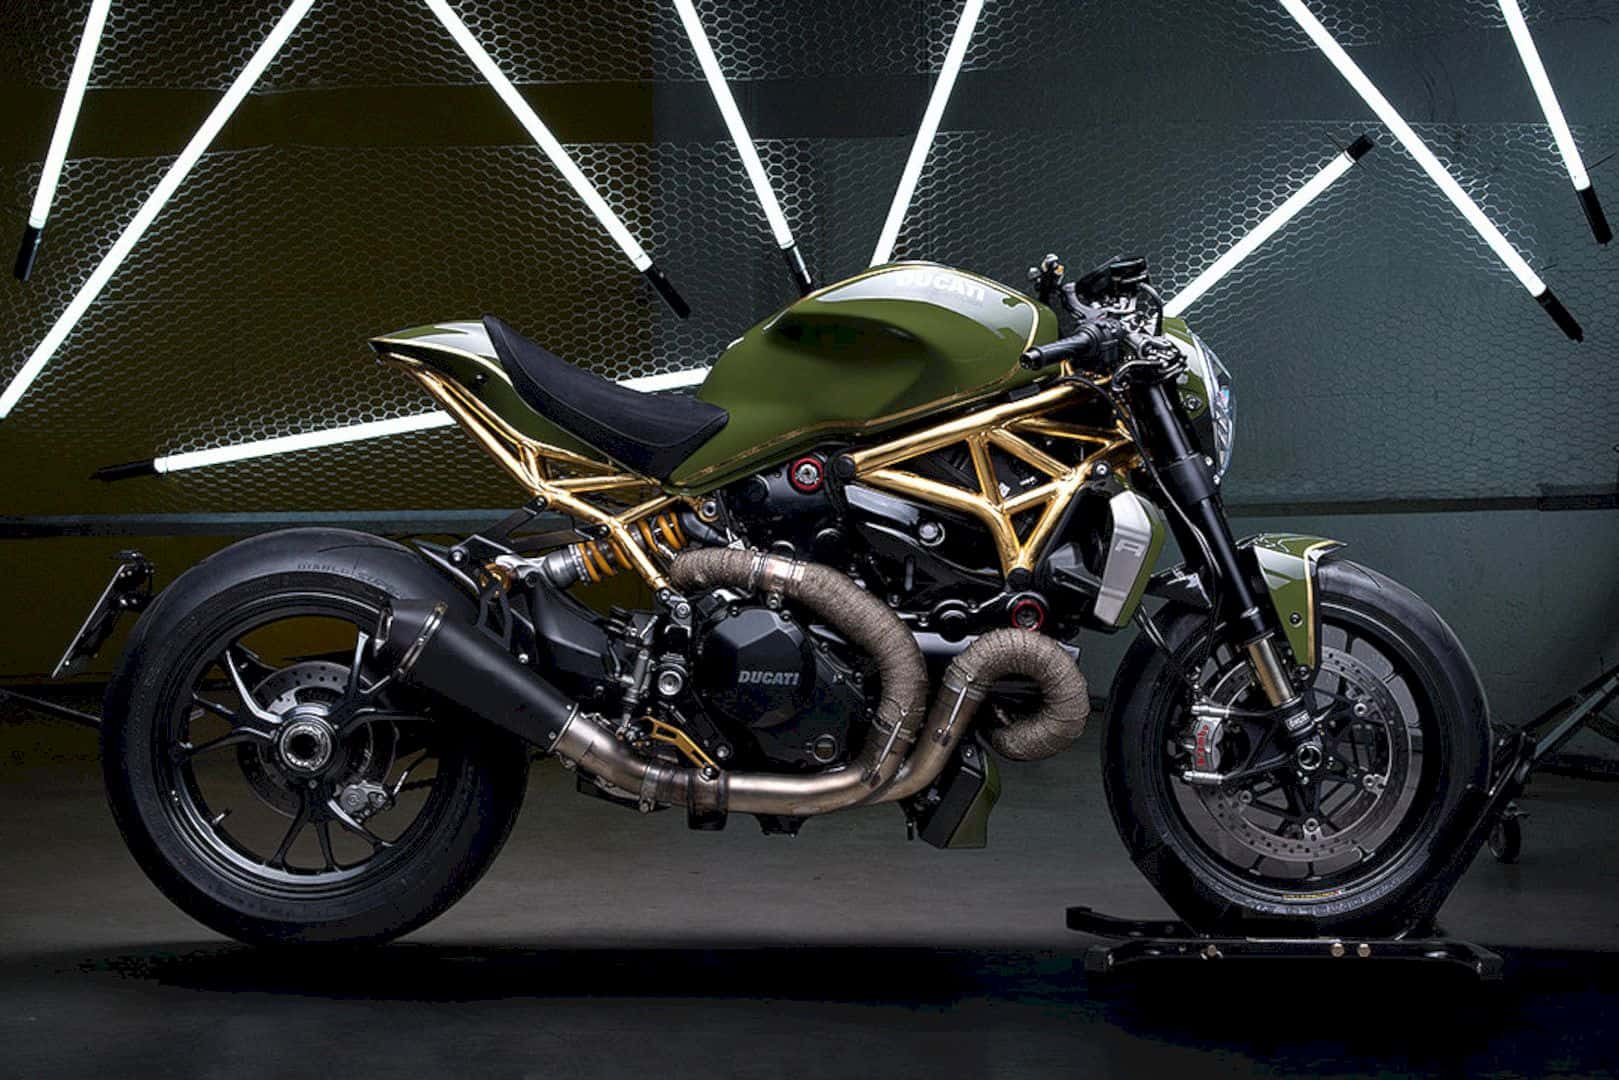 The Golden Monster by Diamond Atelier – The 24K Real Special Machine